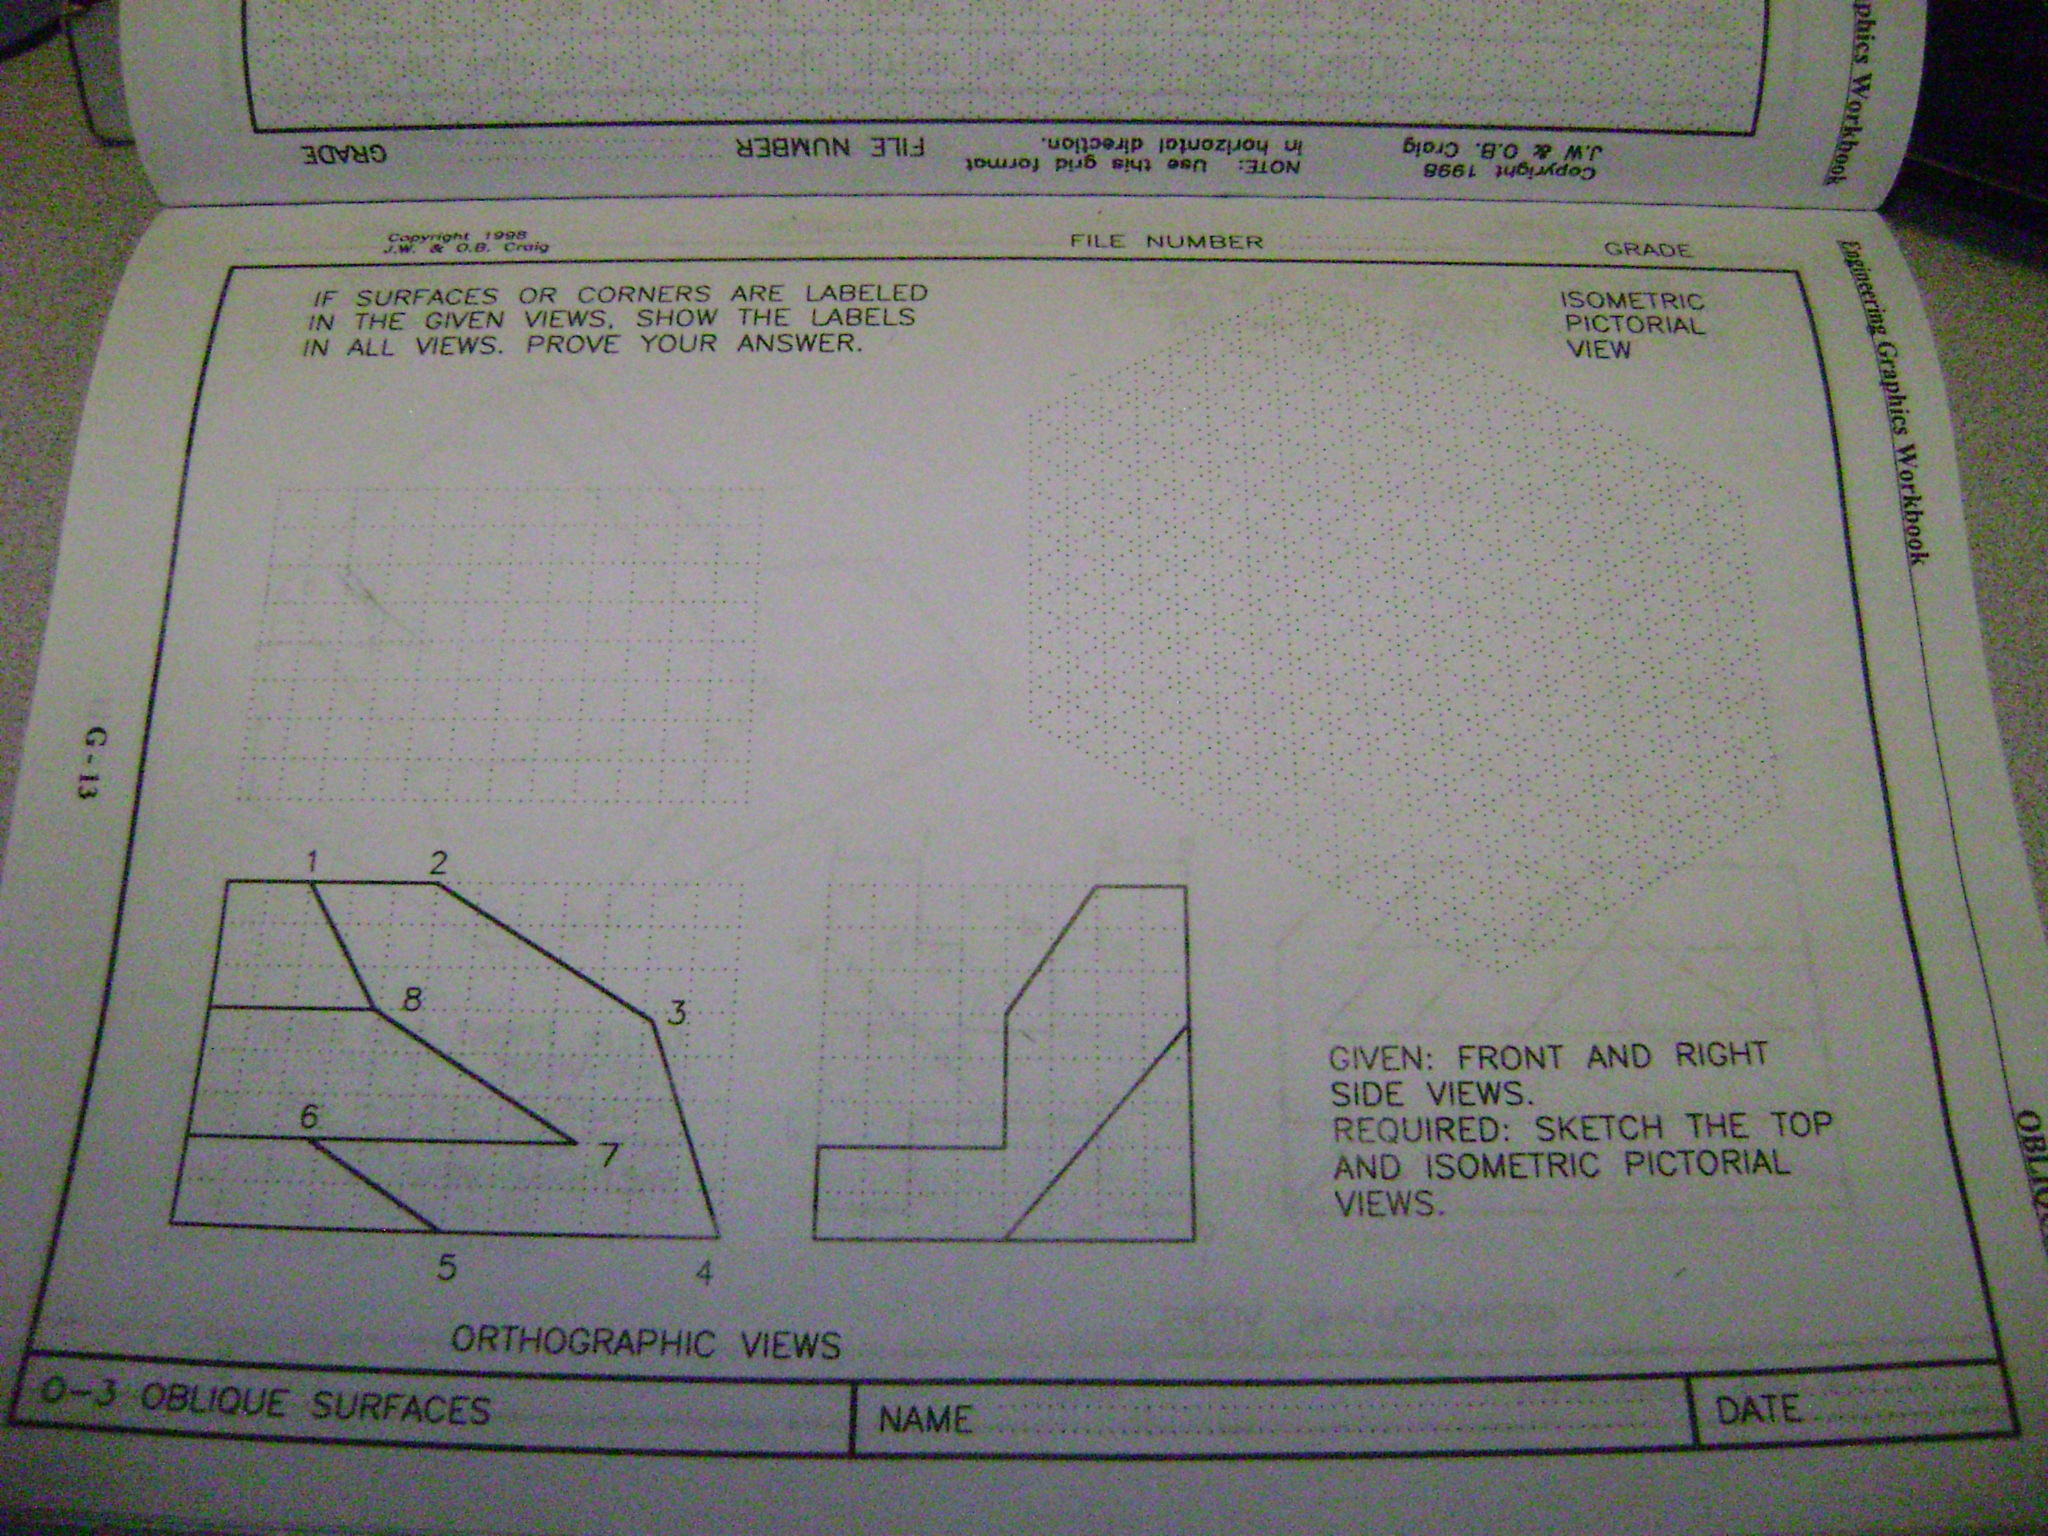 easy engineering drawing assignment i can t visua com easy engineering drawing assignment i can t visualize these need quick response just draw the top view and isometric pictorial view for both of these